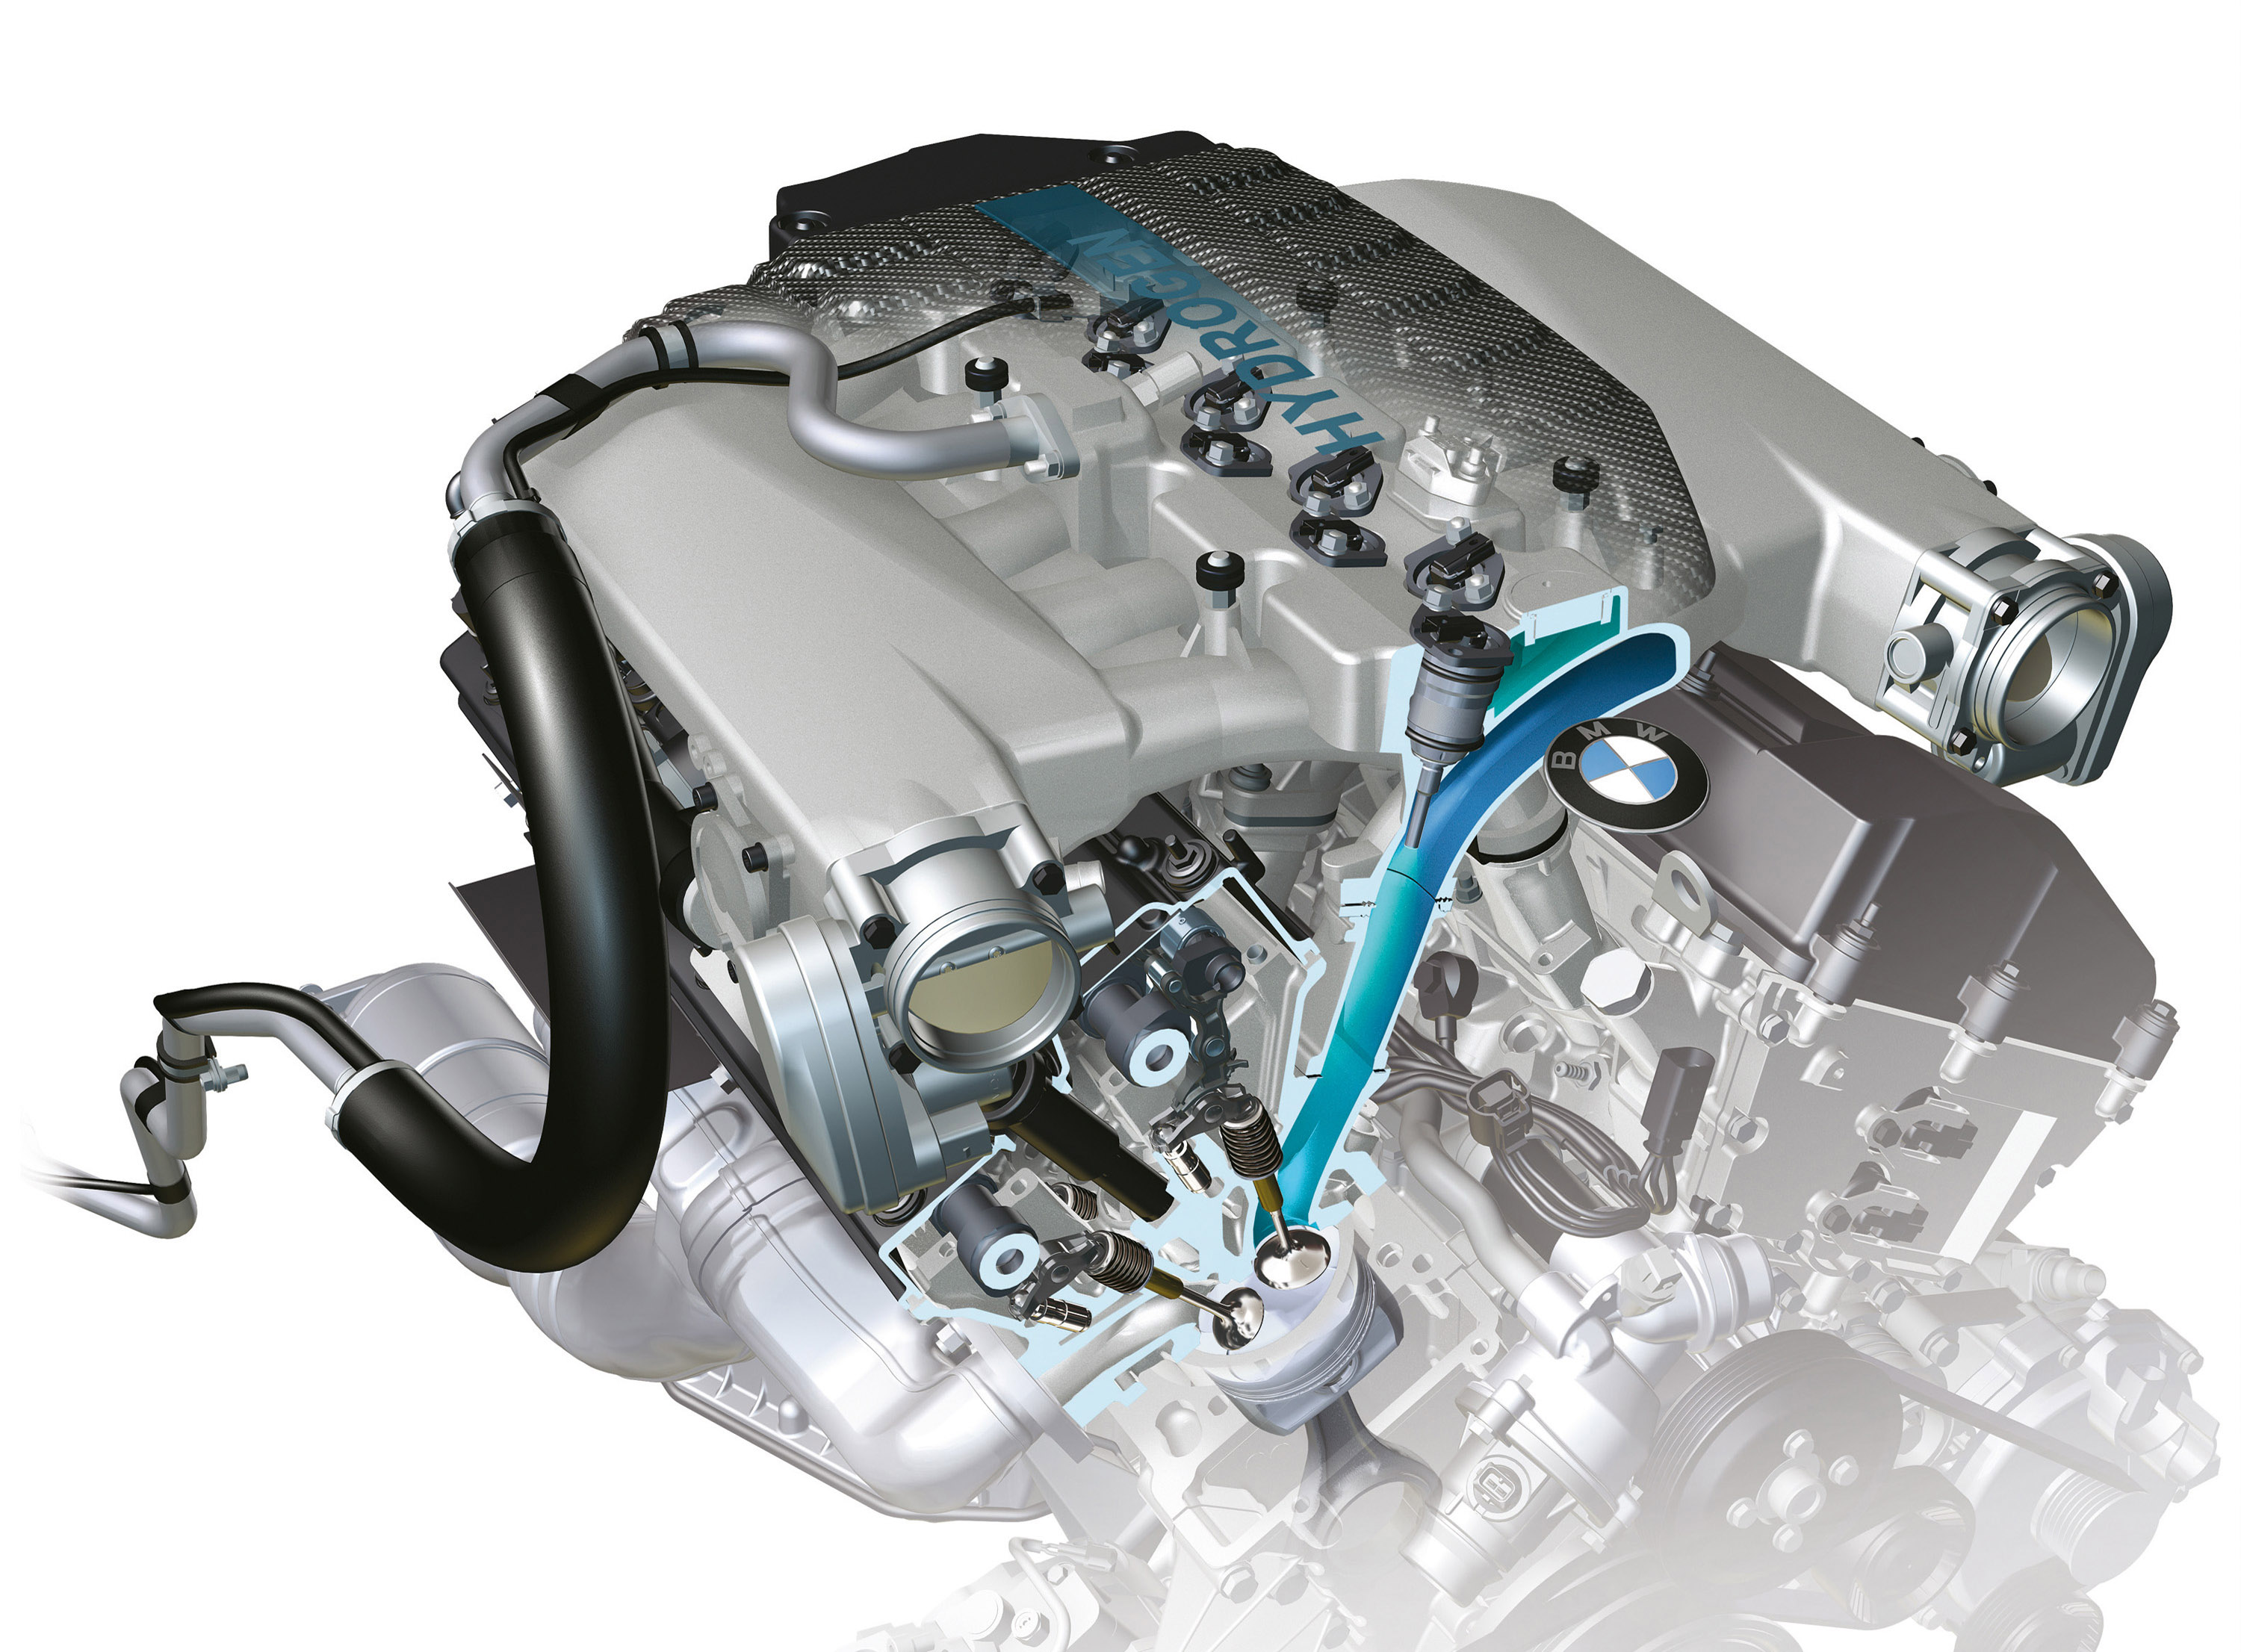 bmw-hydrogen-7-engine_02.jpg